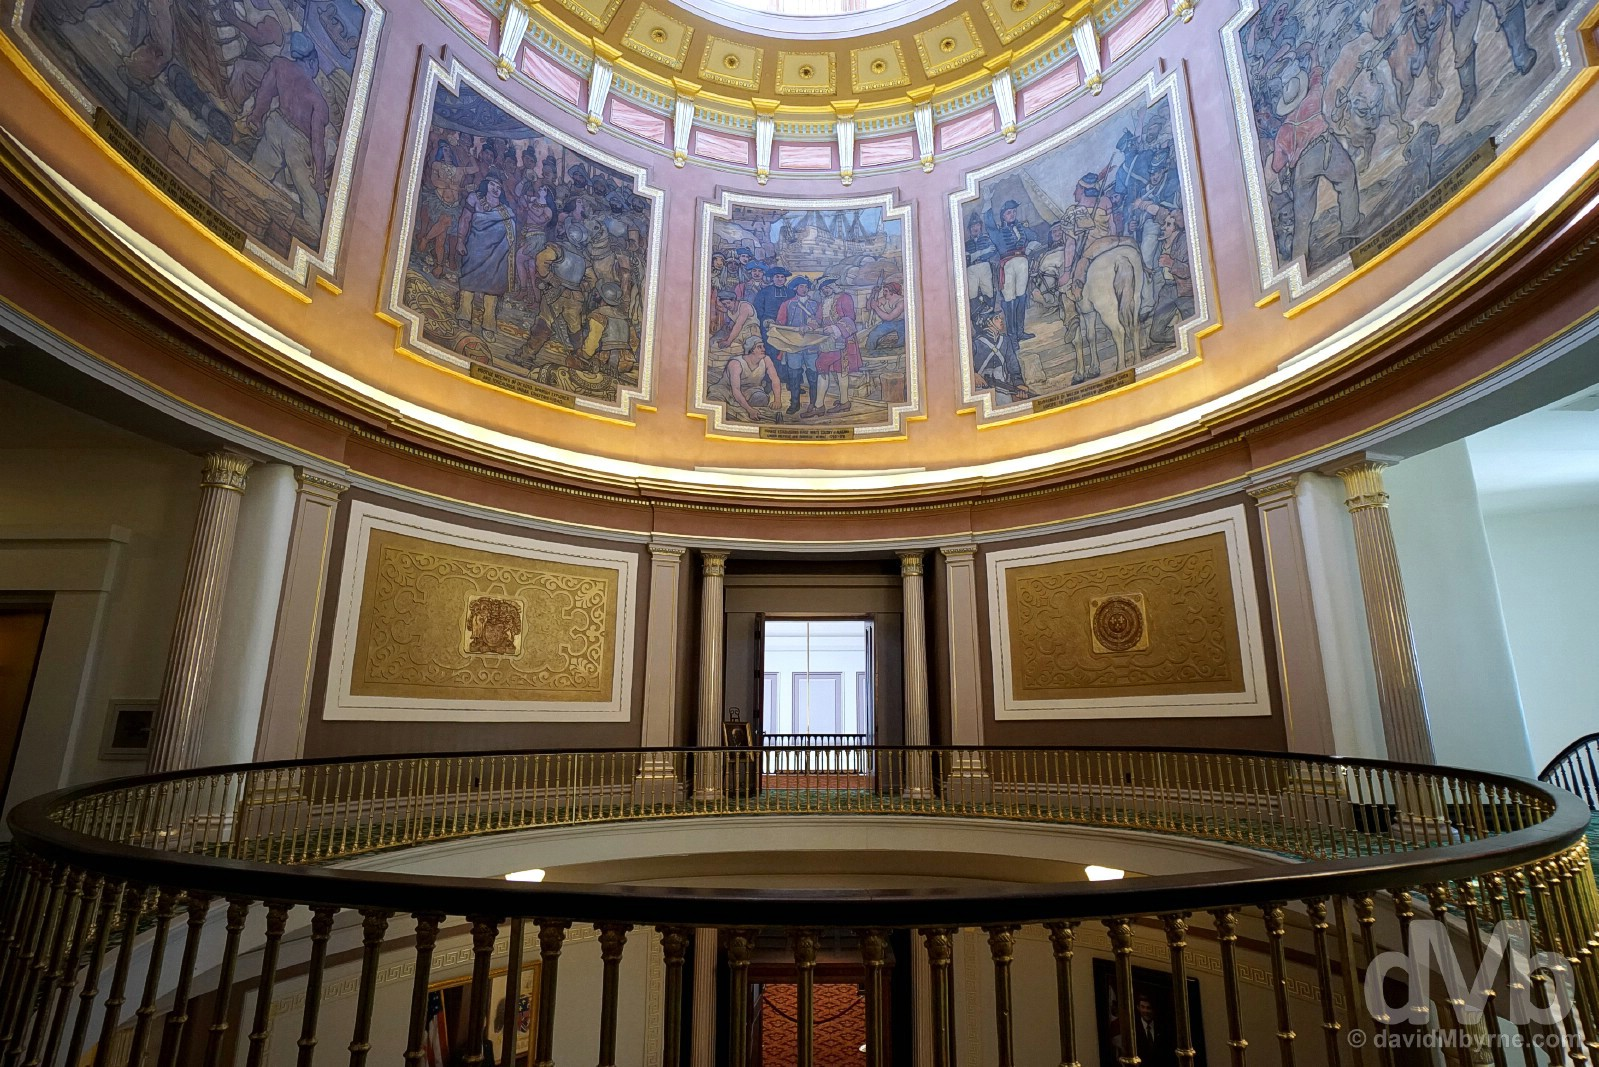 The interior of the Alabama State Capitol Building in Montgomery, Alabama, USA. September 21, 2016.